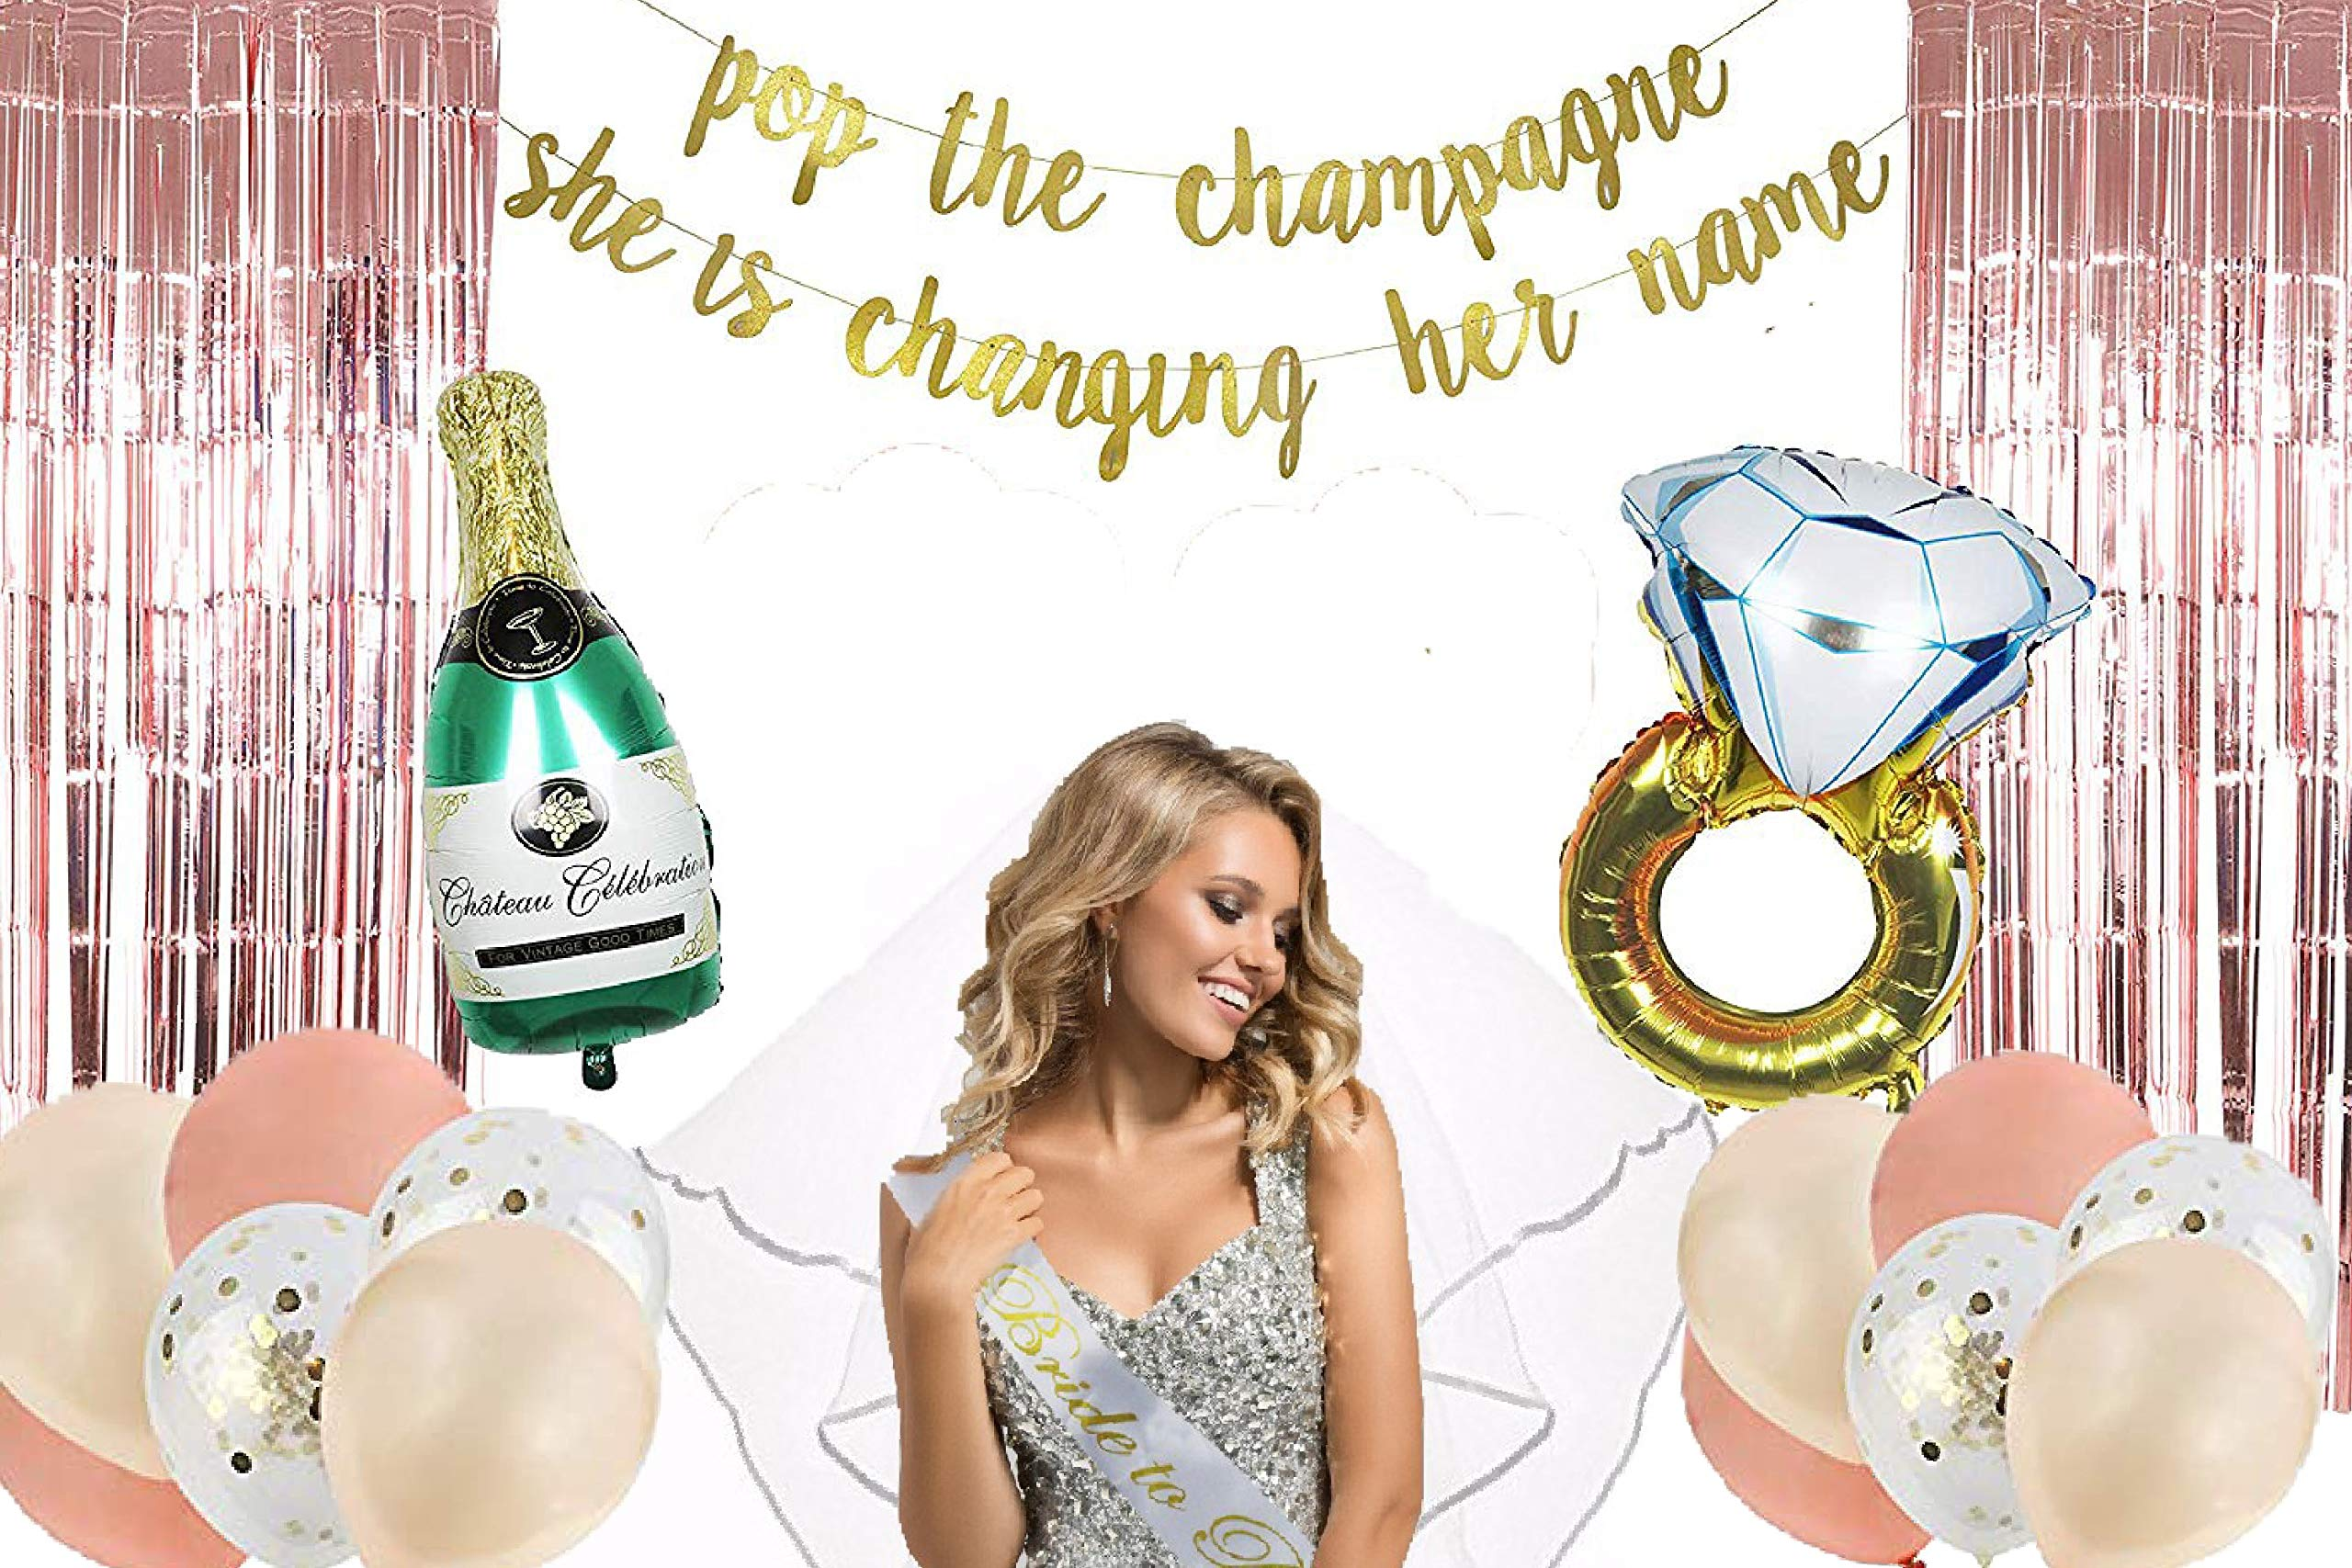 Bachelorette Party Decorations kit - Bridal Shower Supplies - Bride to be Sash, Veil, Foil Fringe Curtain, Champagne, Ring foil, Confetti, Rose Gold Balloons, Gold Glitter Banner, Pop The Champagne